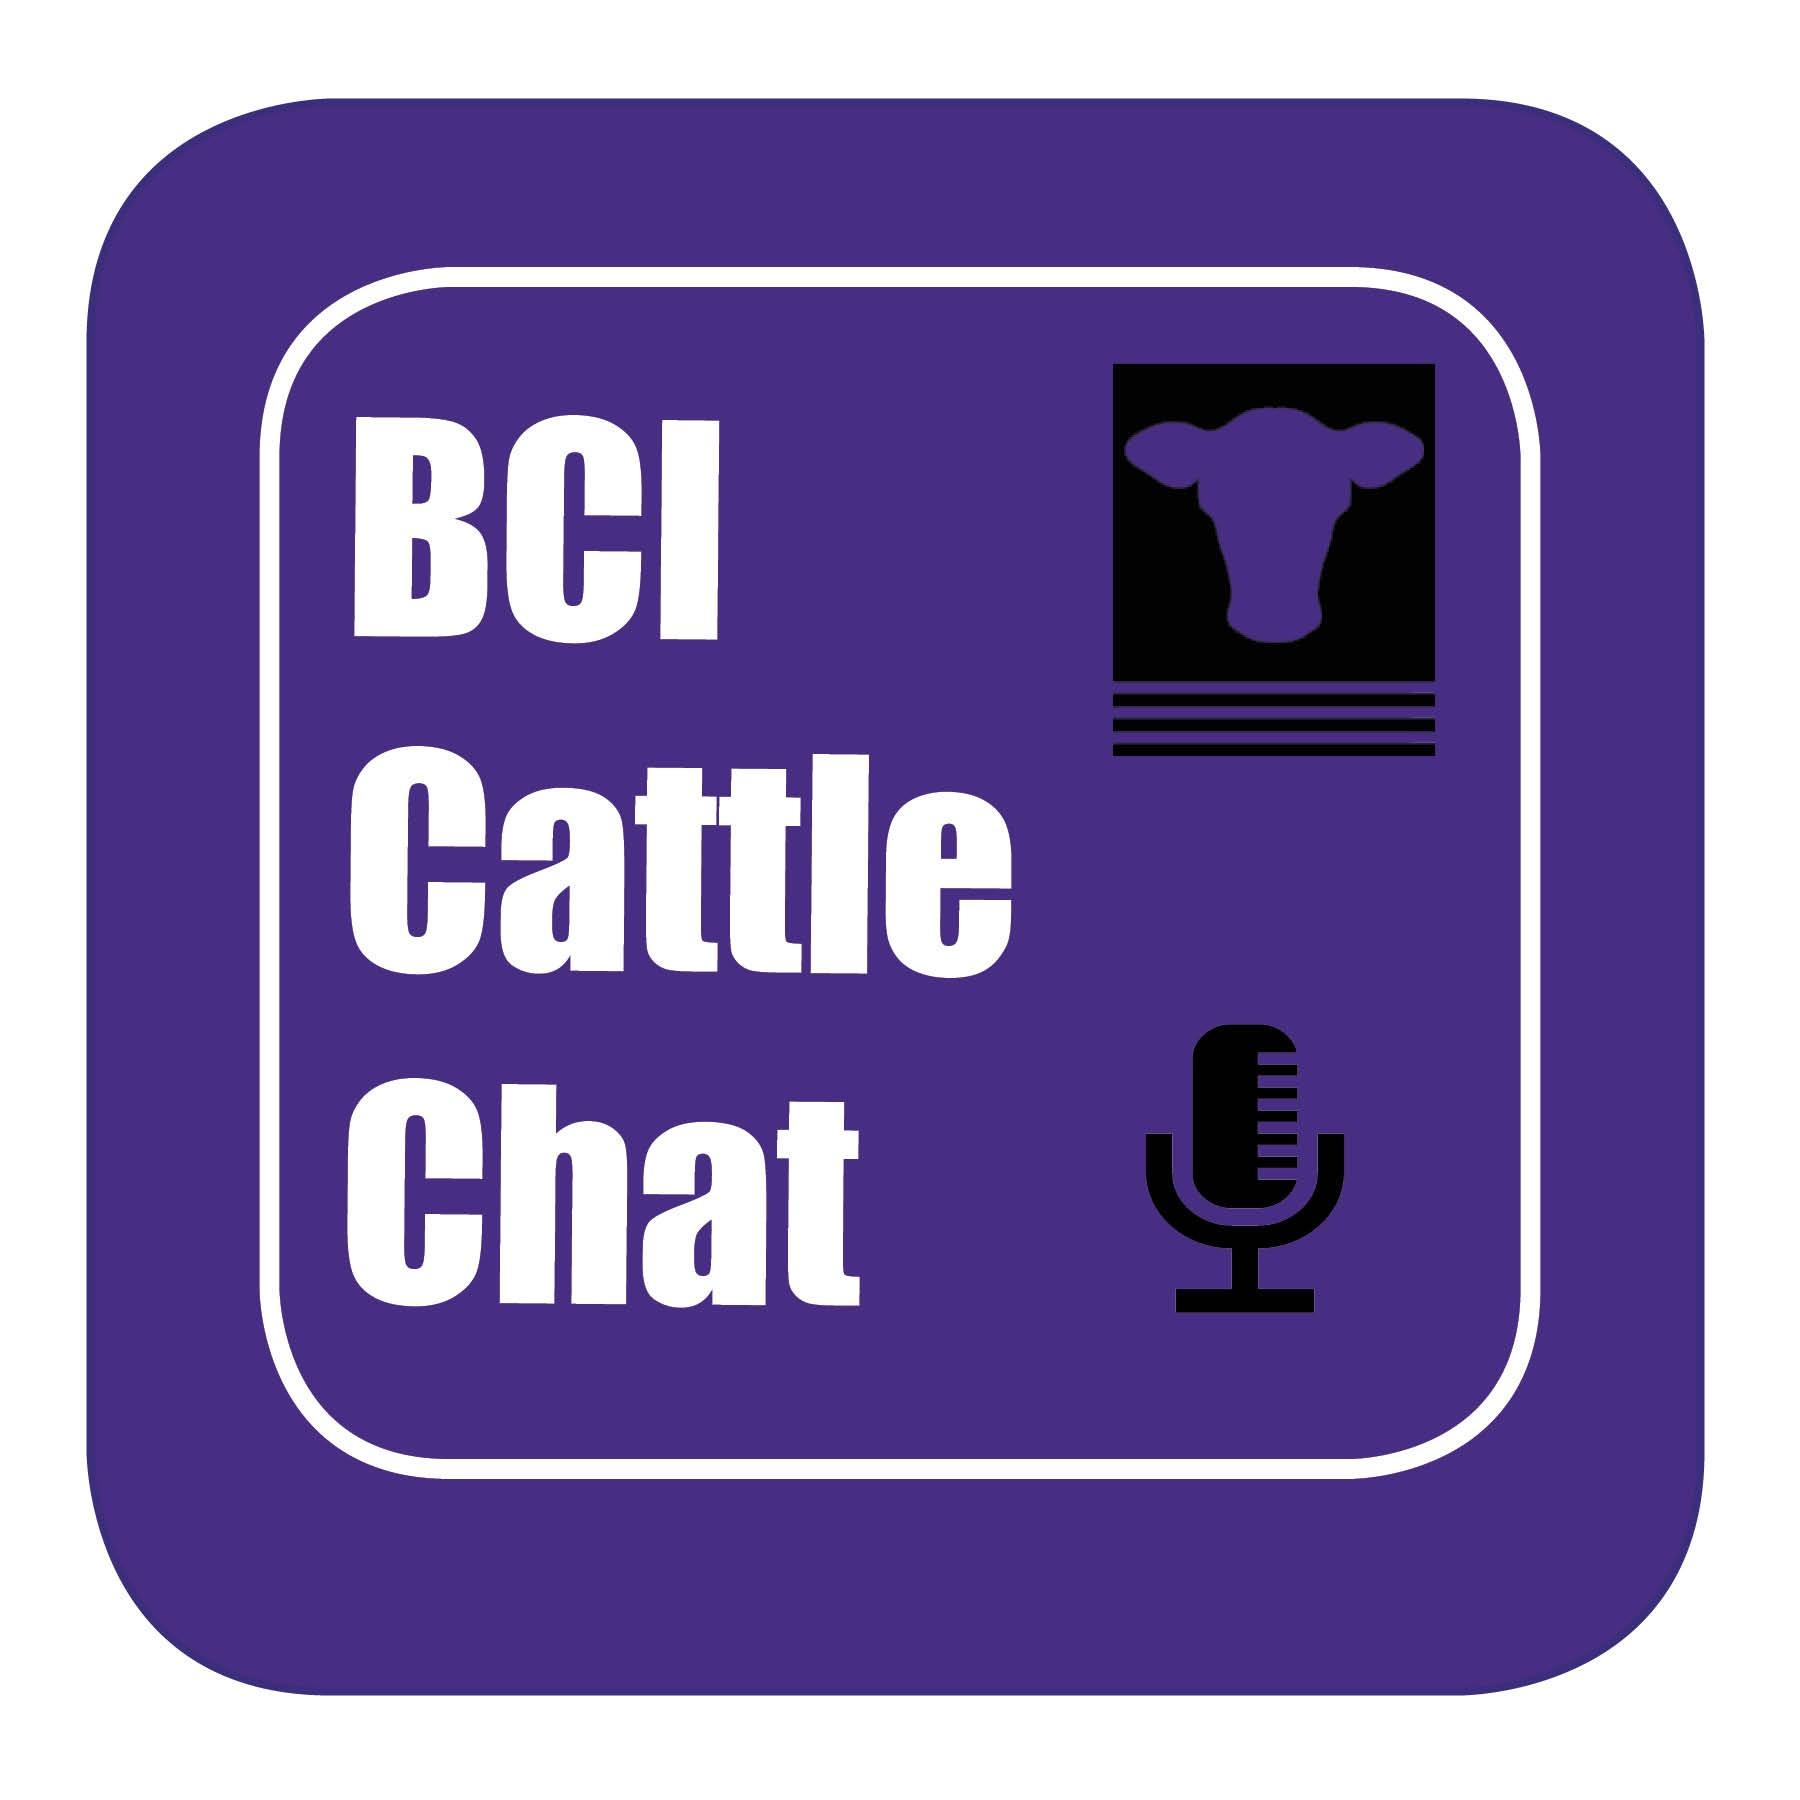 BCI Cattle Chat - Episode 27